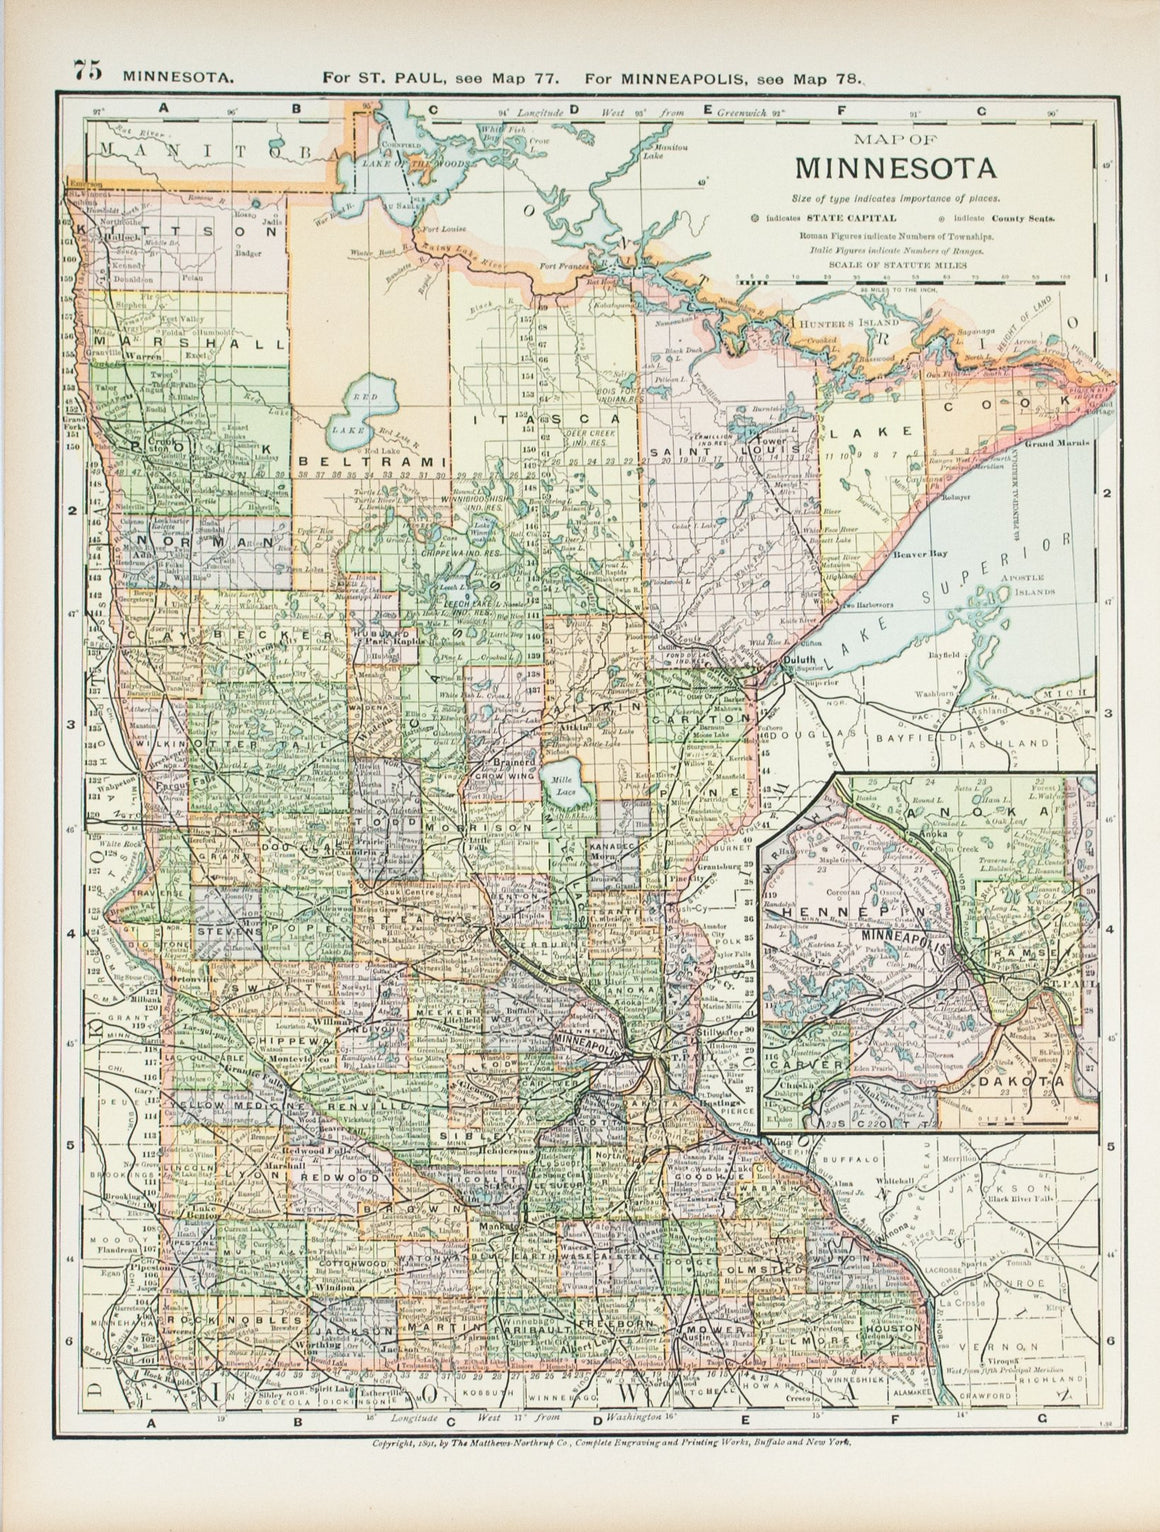 1891 Map of Minnesota